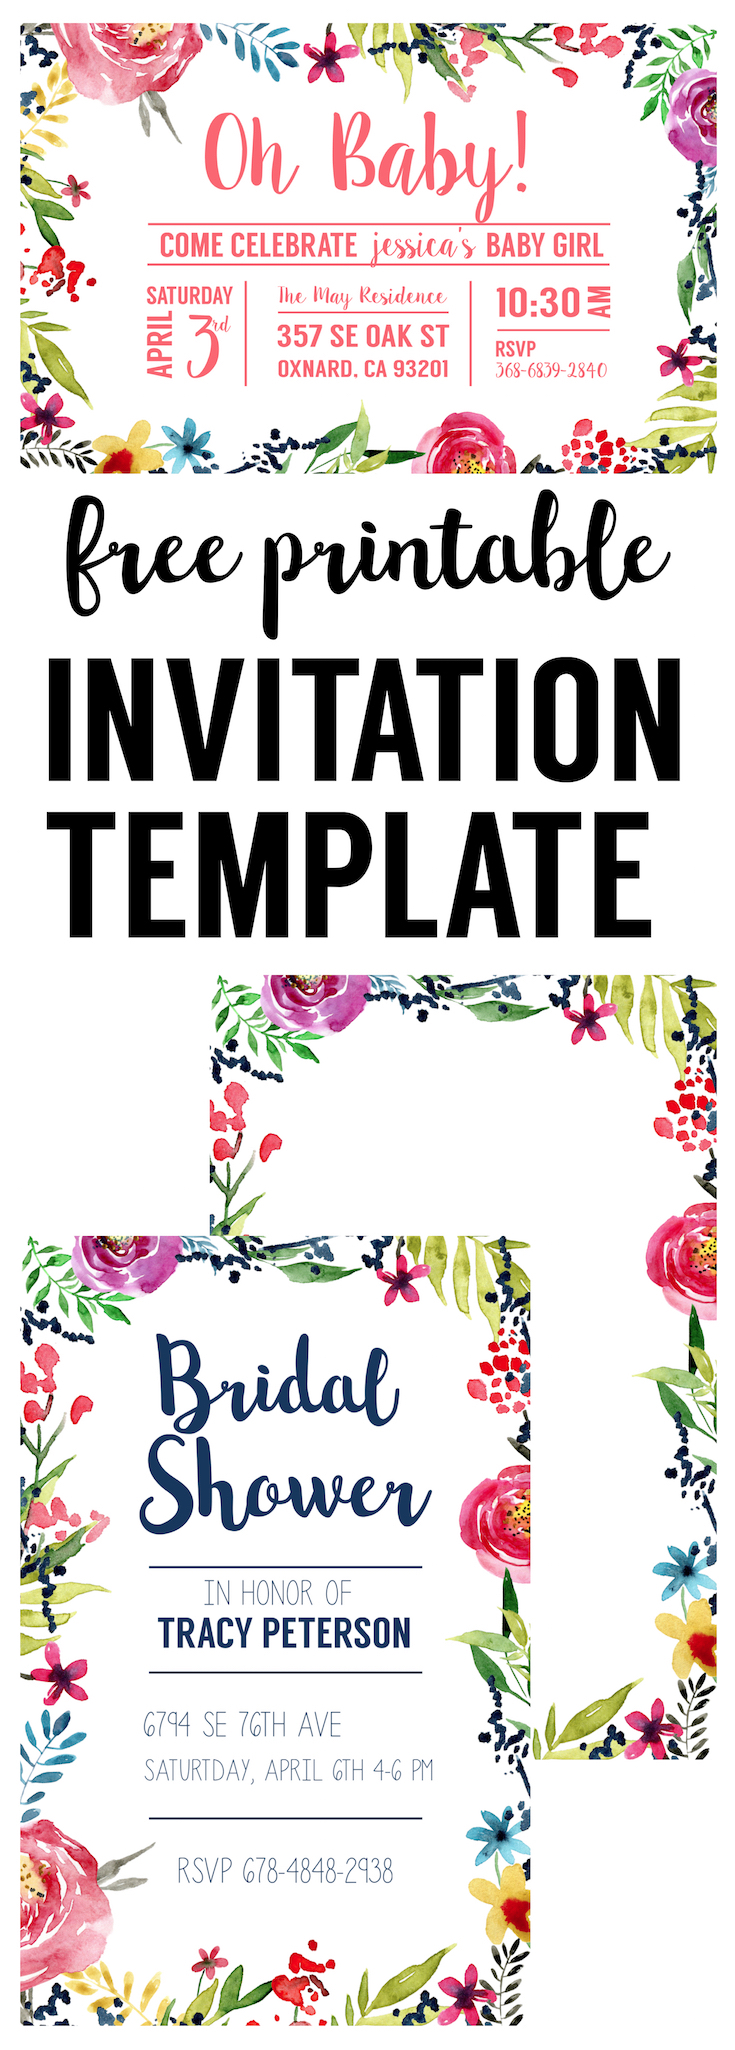 floral borders invitations free printable invitation templates